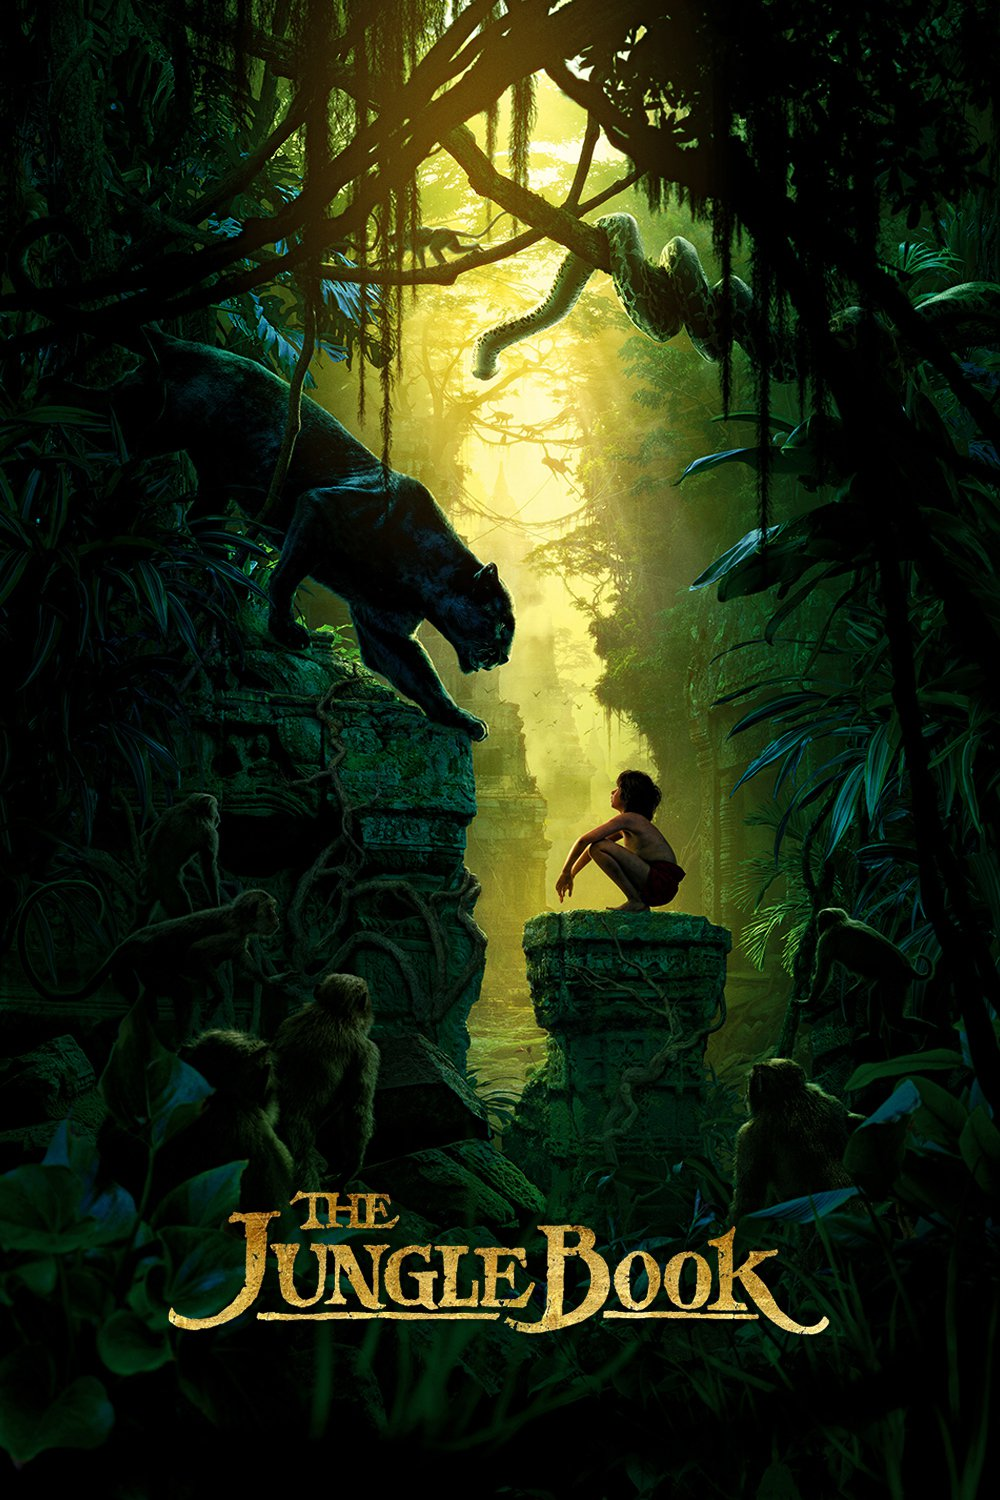 The Jungle Book (2016): Definitely a good family movie.